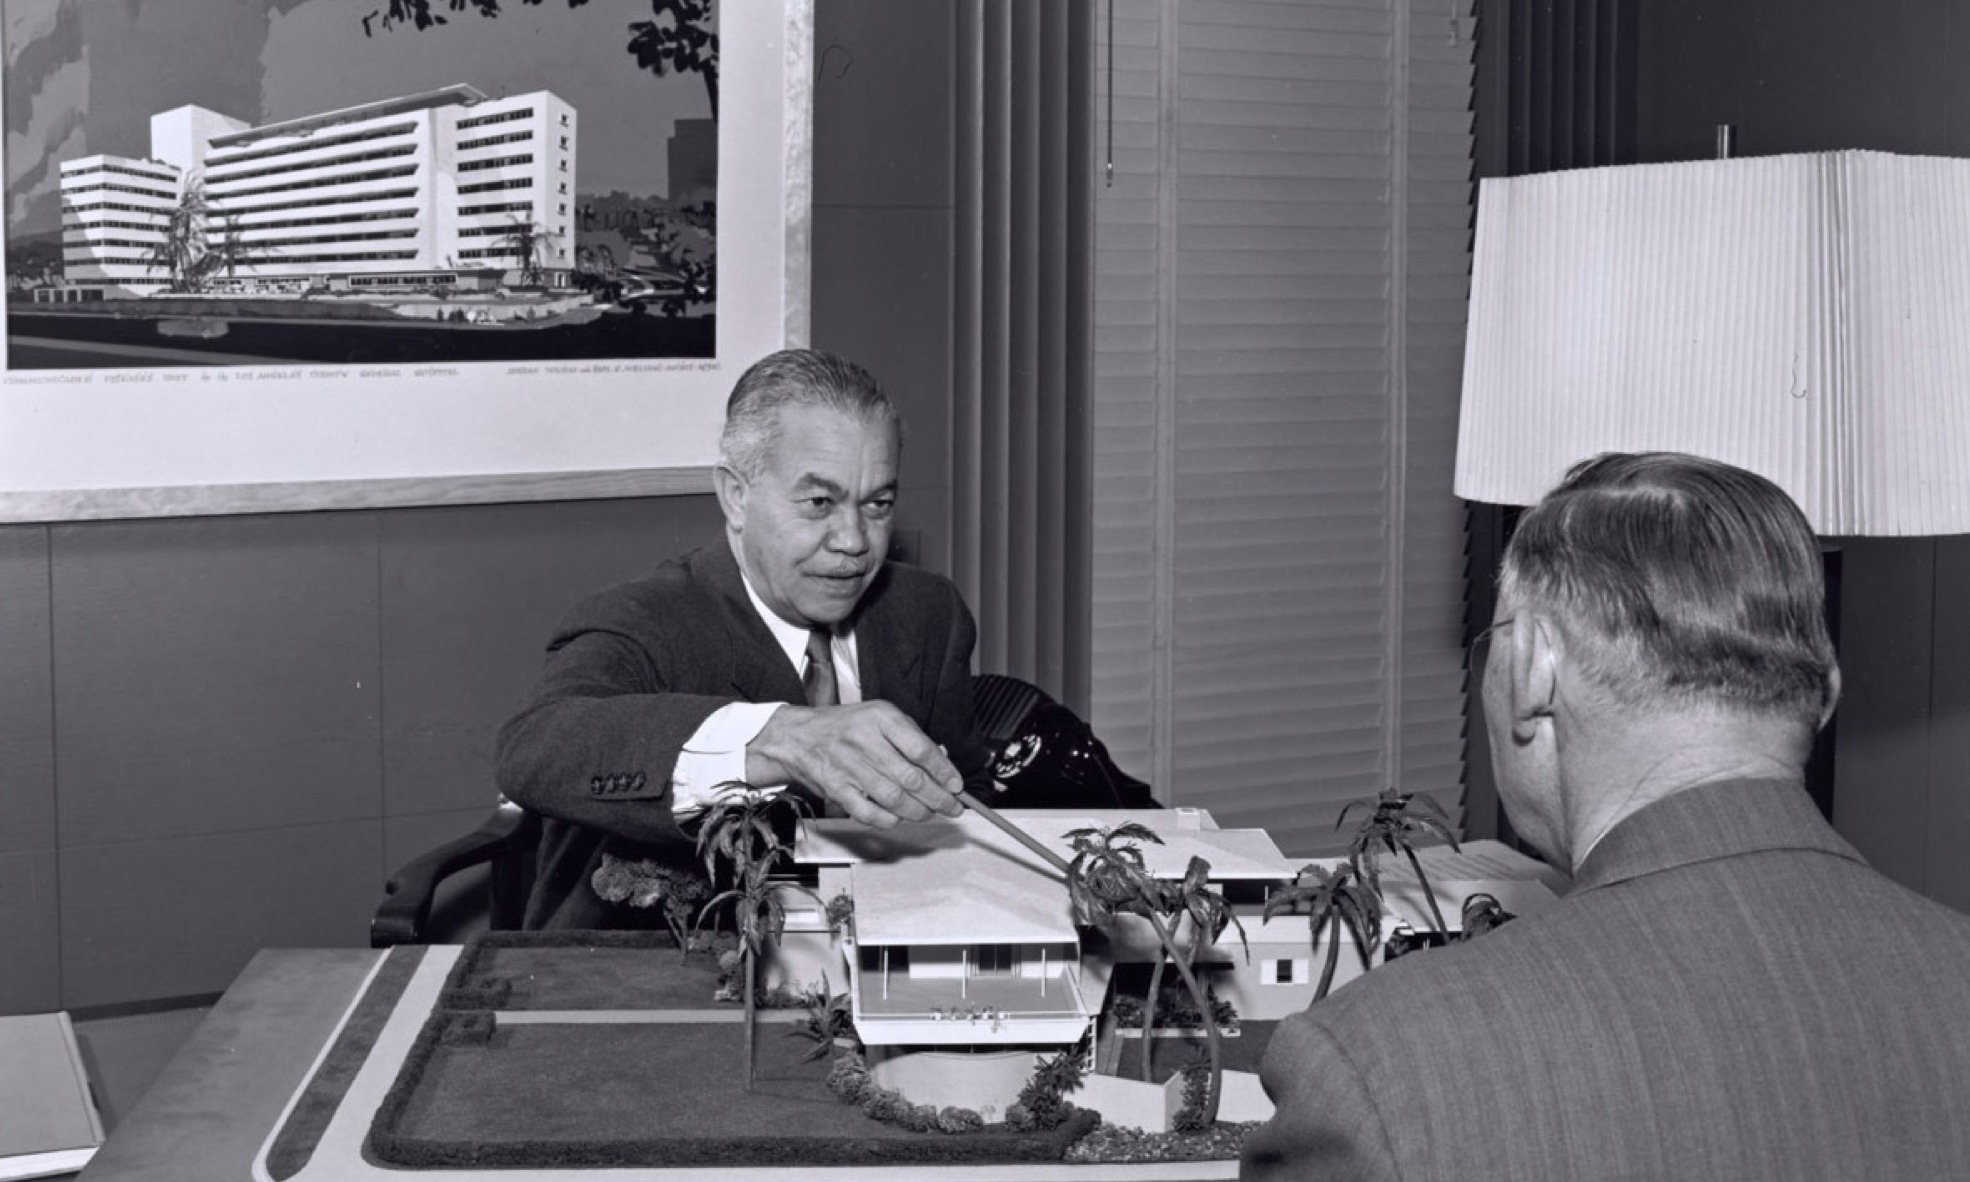 Paul Revere Williams in his Los Angeles office.